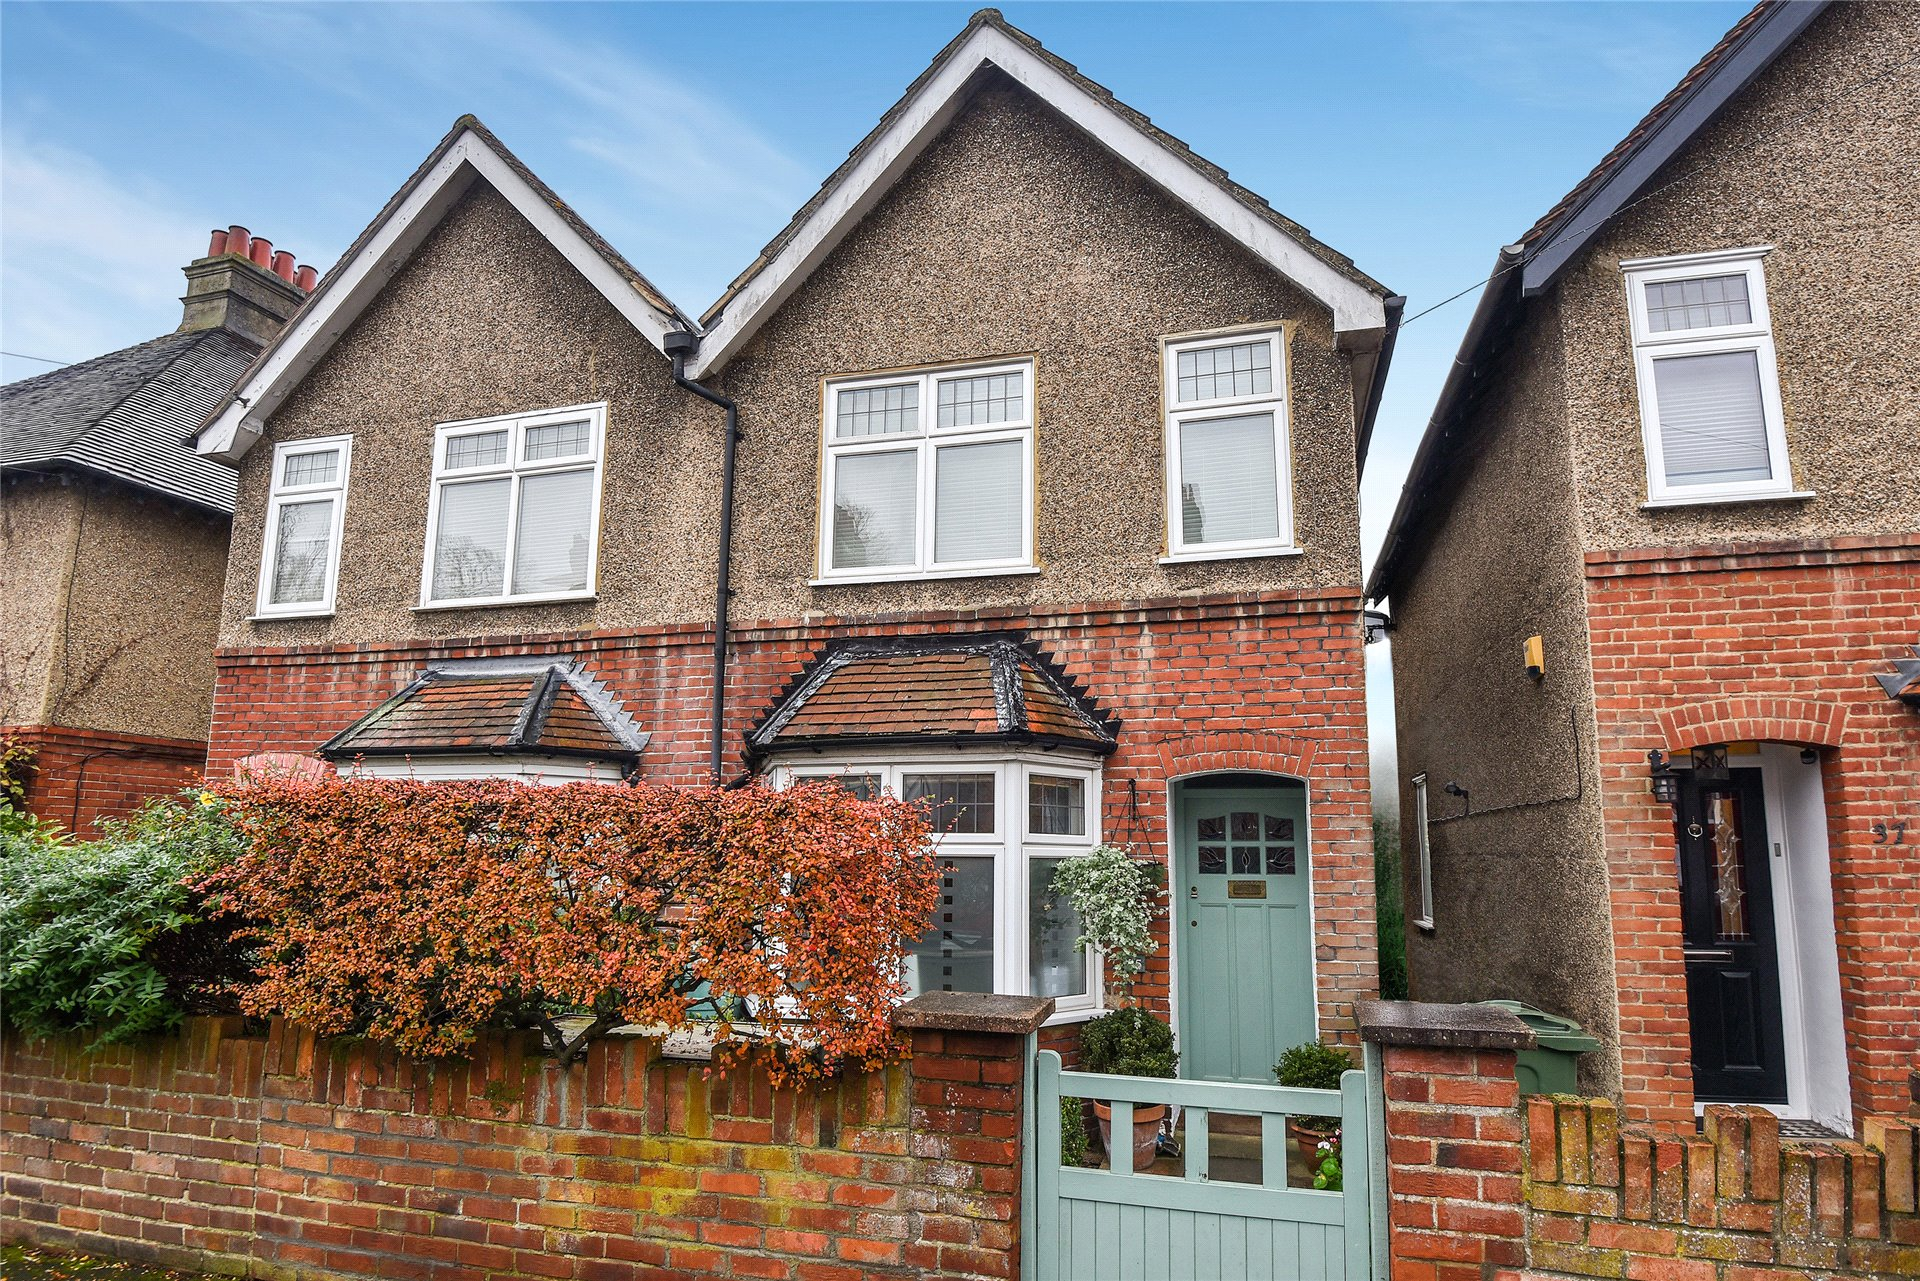 2 Bedrooms Semi Detached House for sale in Clare Road, Maidenhead, Berkshire, SL6